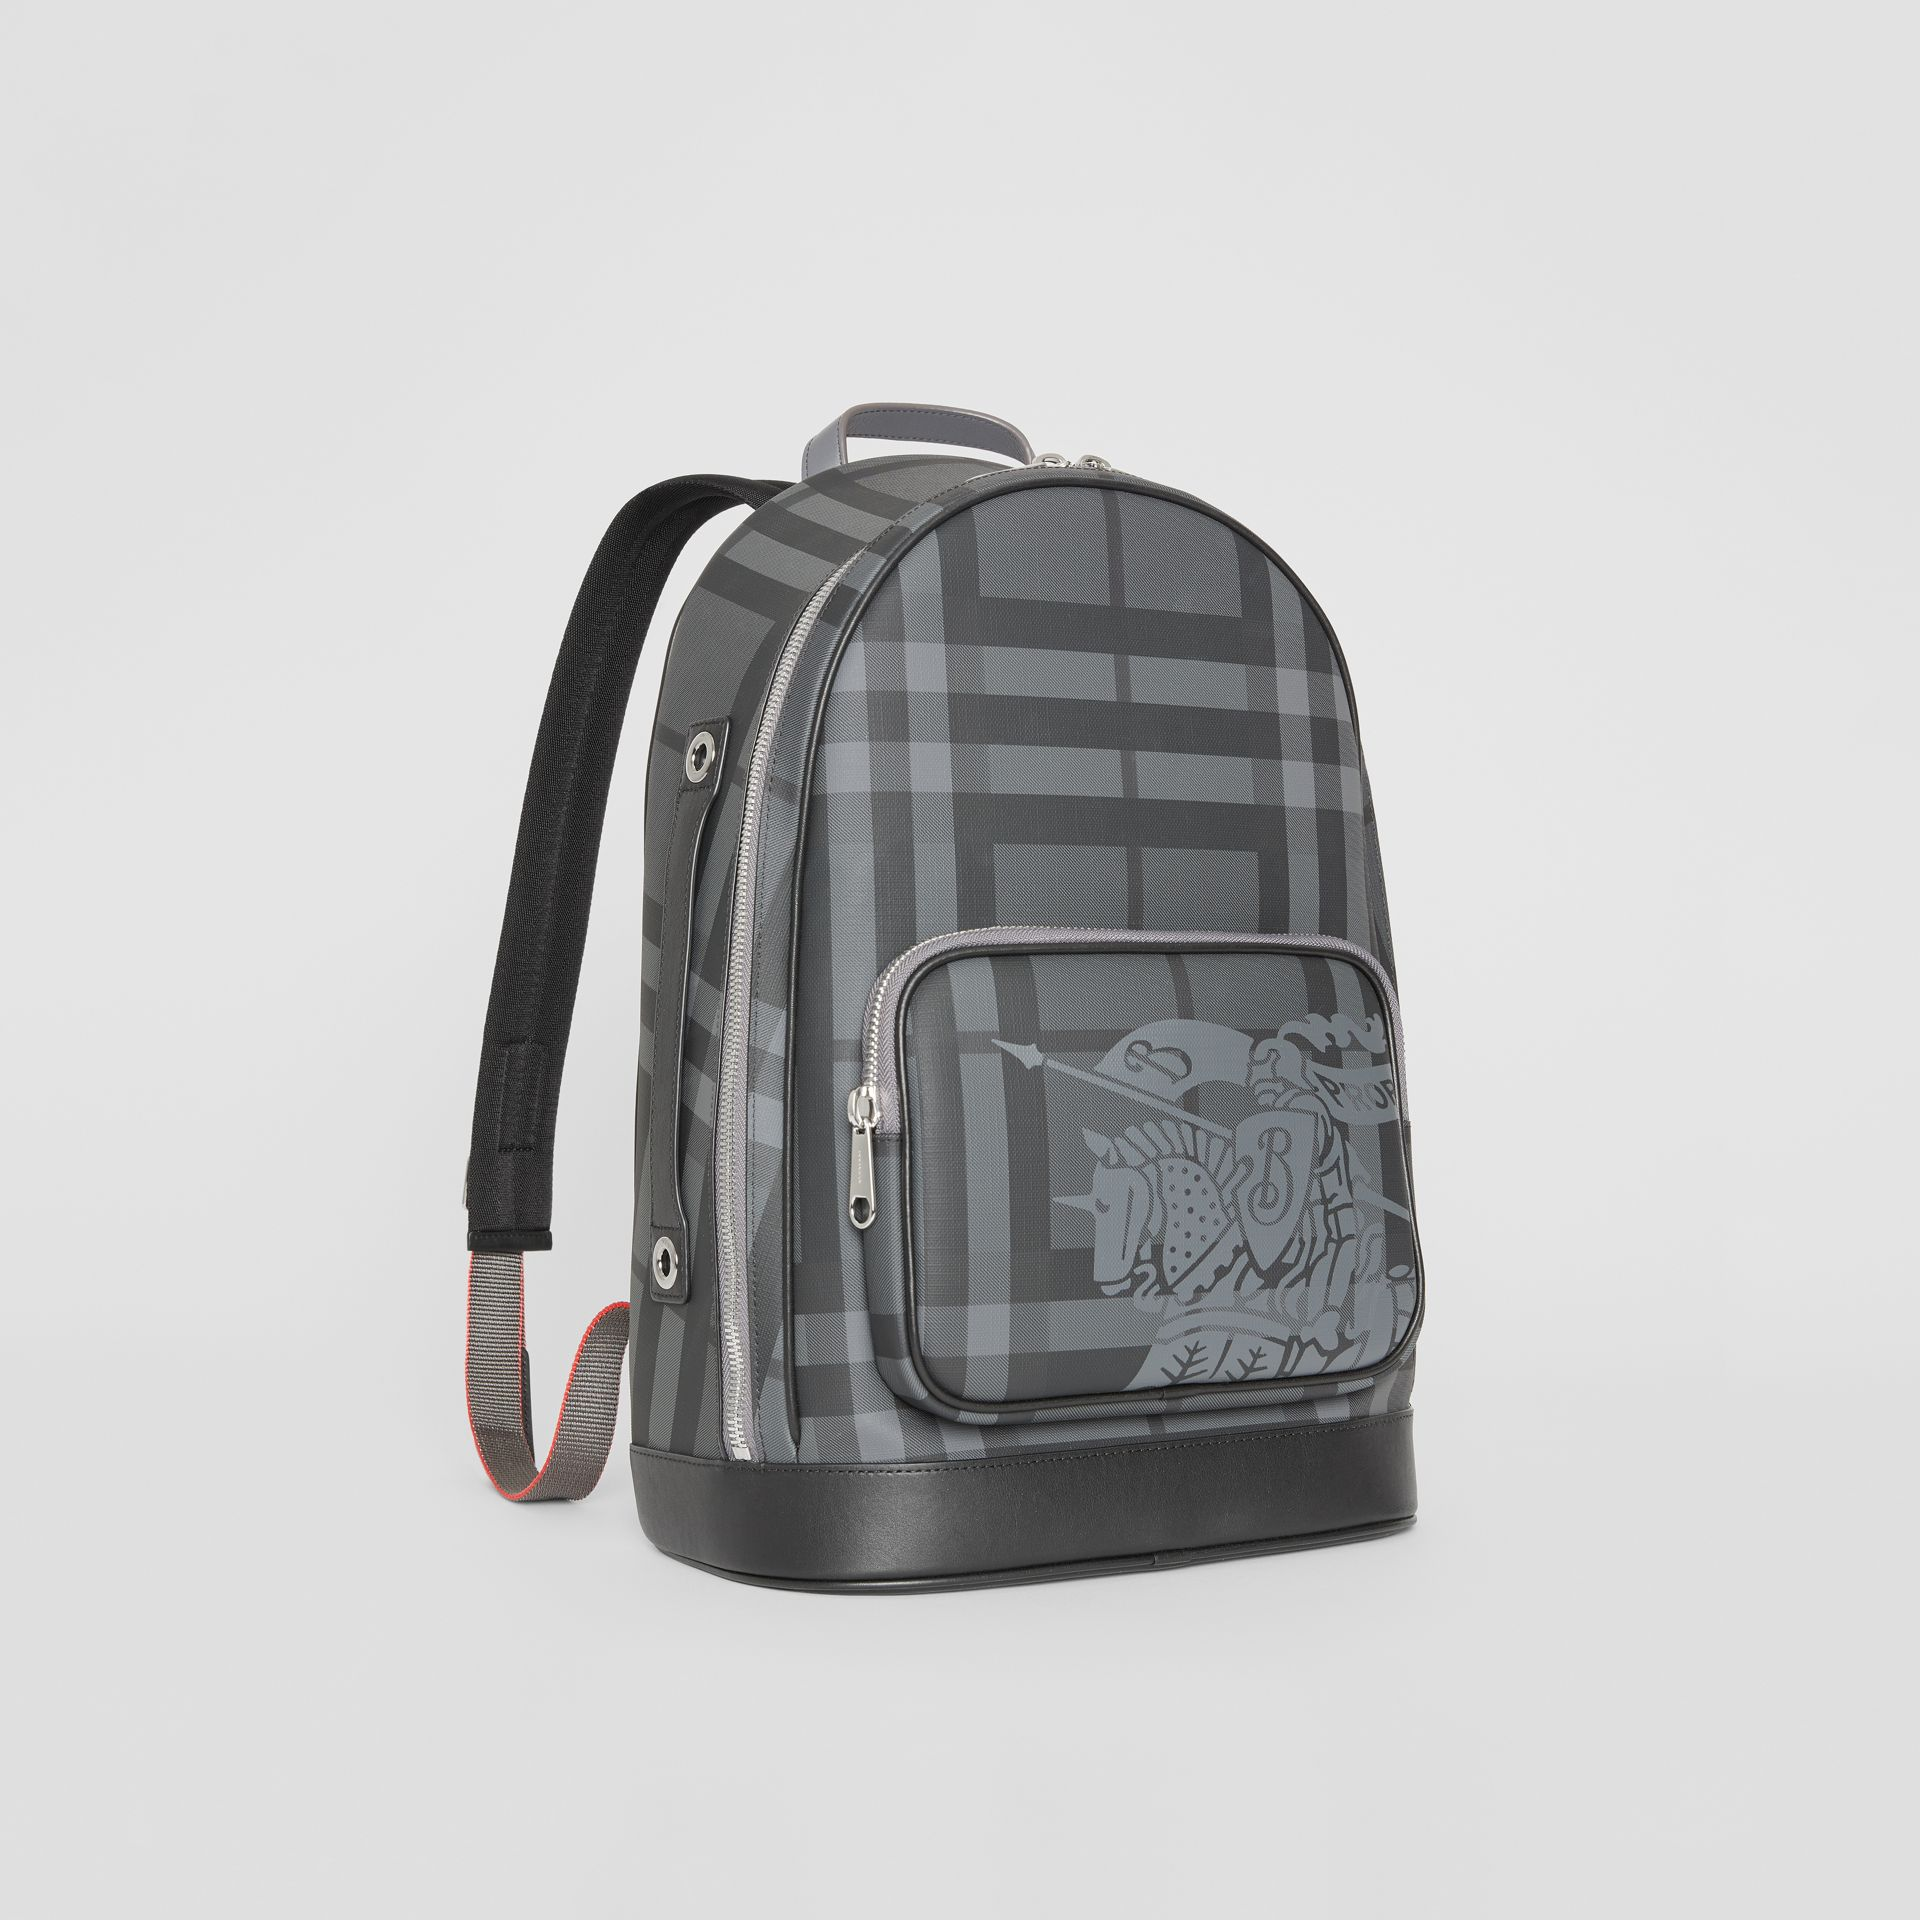 EKD London Check and Leather Backpack in Charcoal/black - Men | Burberry Singapore - gallery image 6